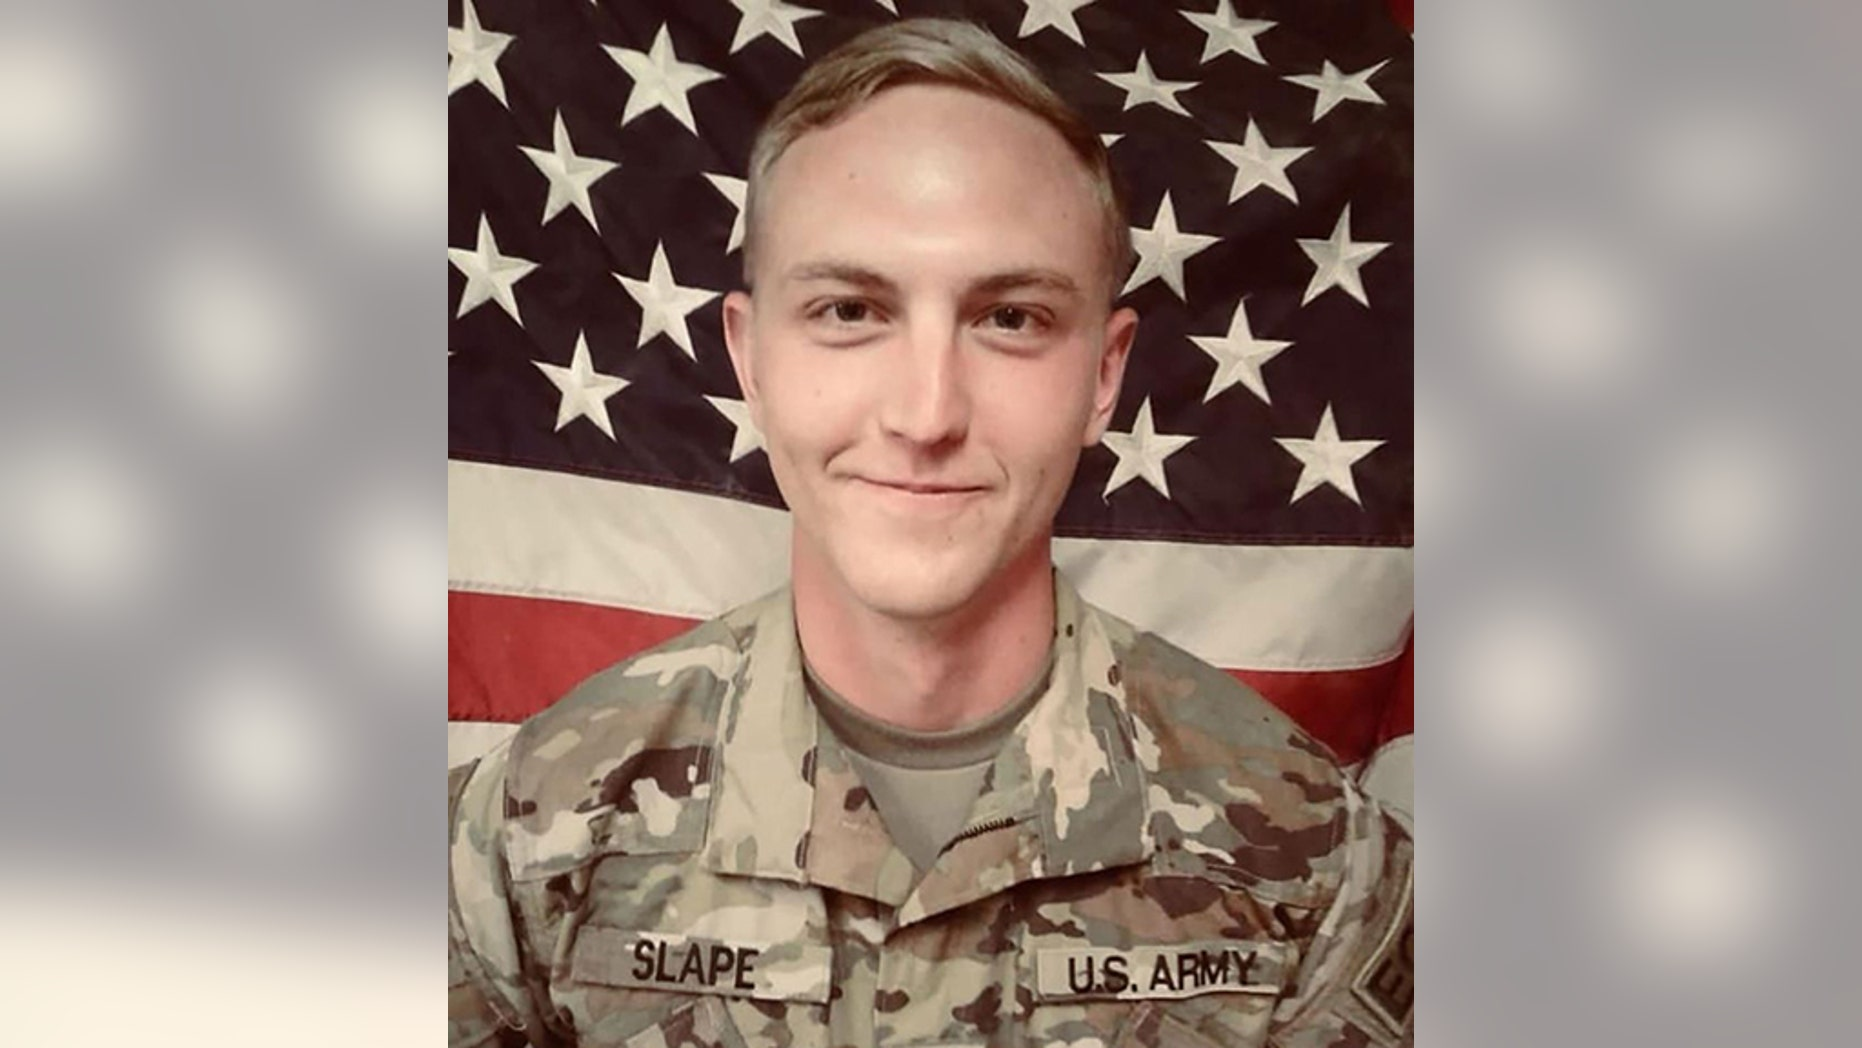 Sgt. James A. Slape was killed Thursday as he worked to clear an area of explosives in Afghanistan.